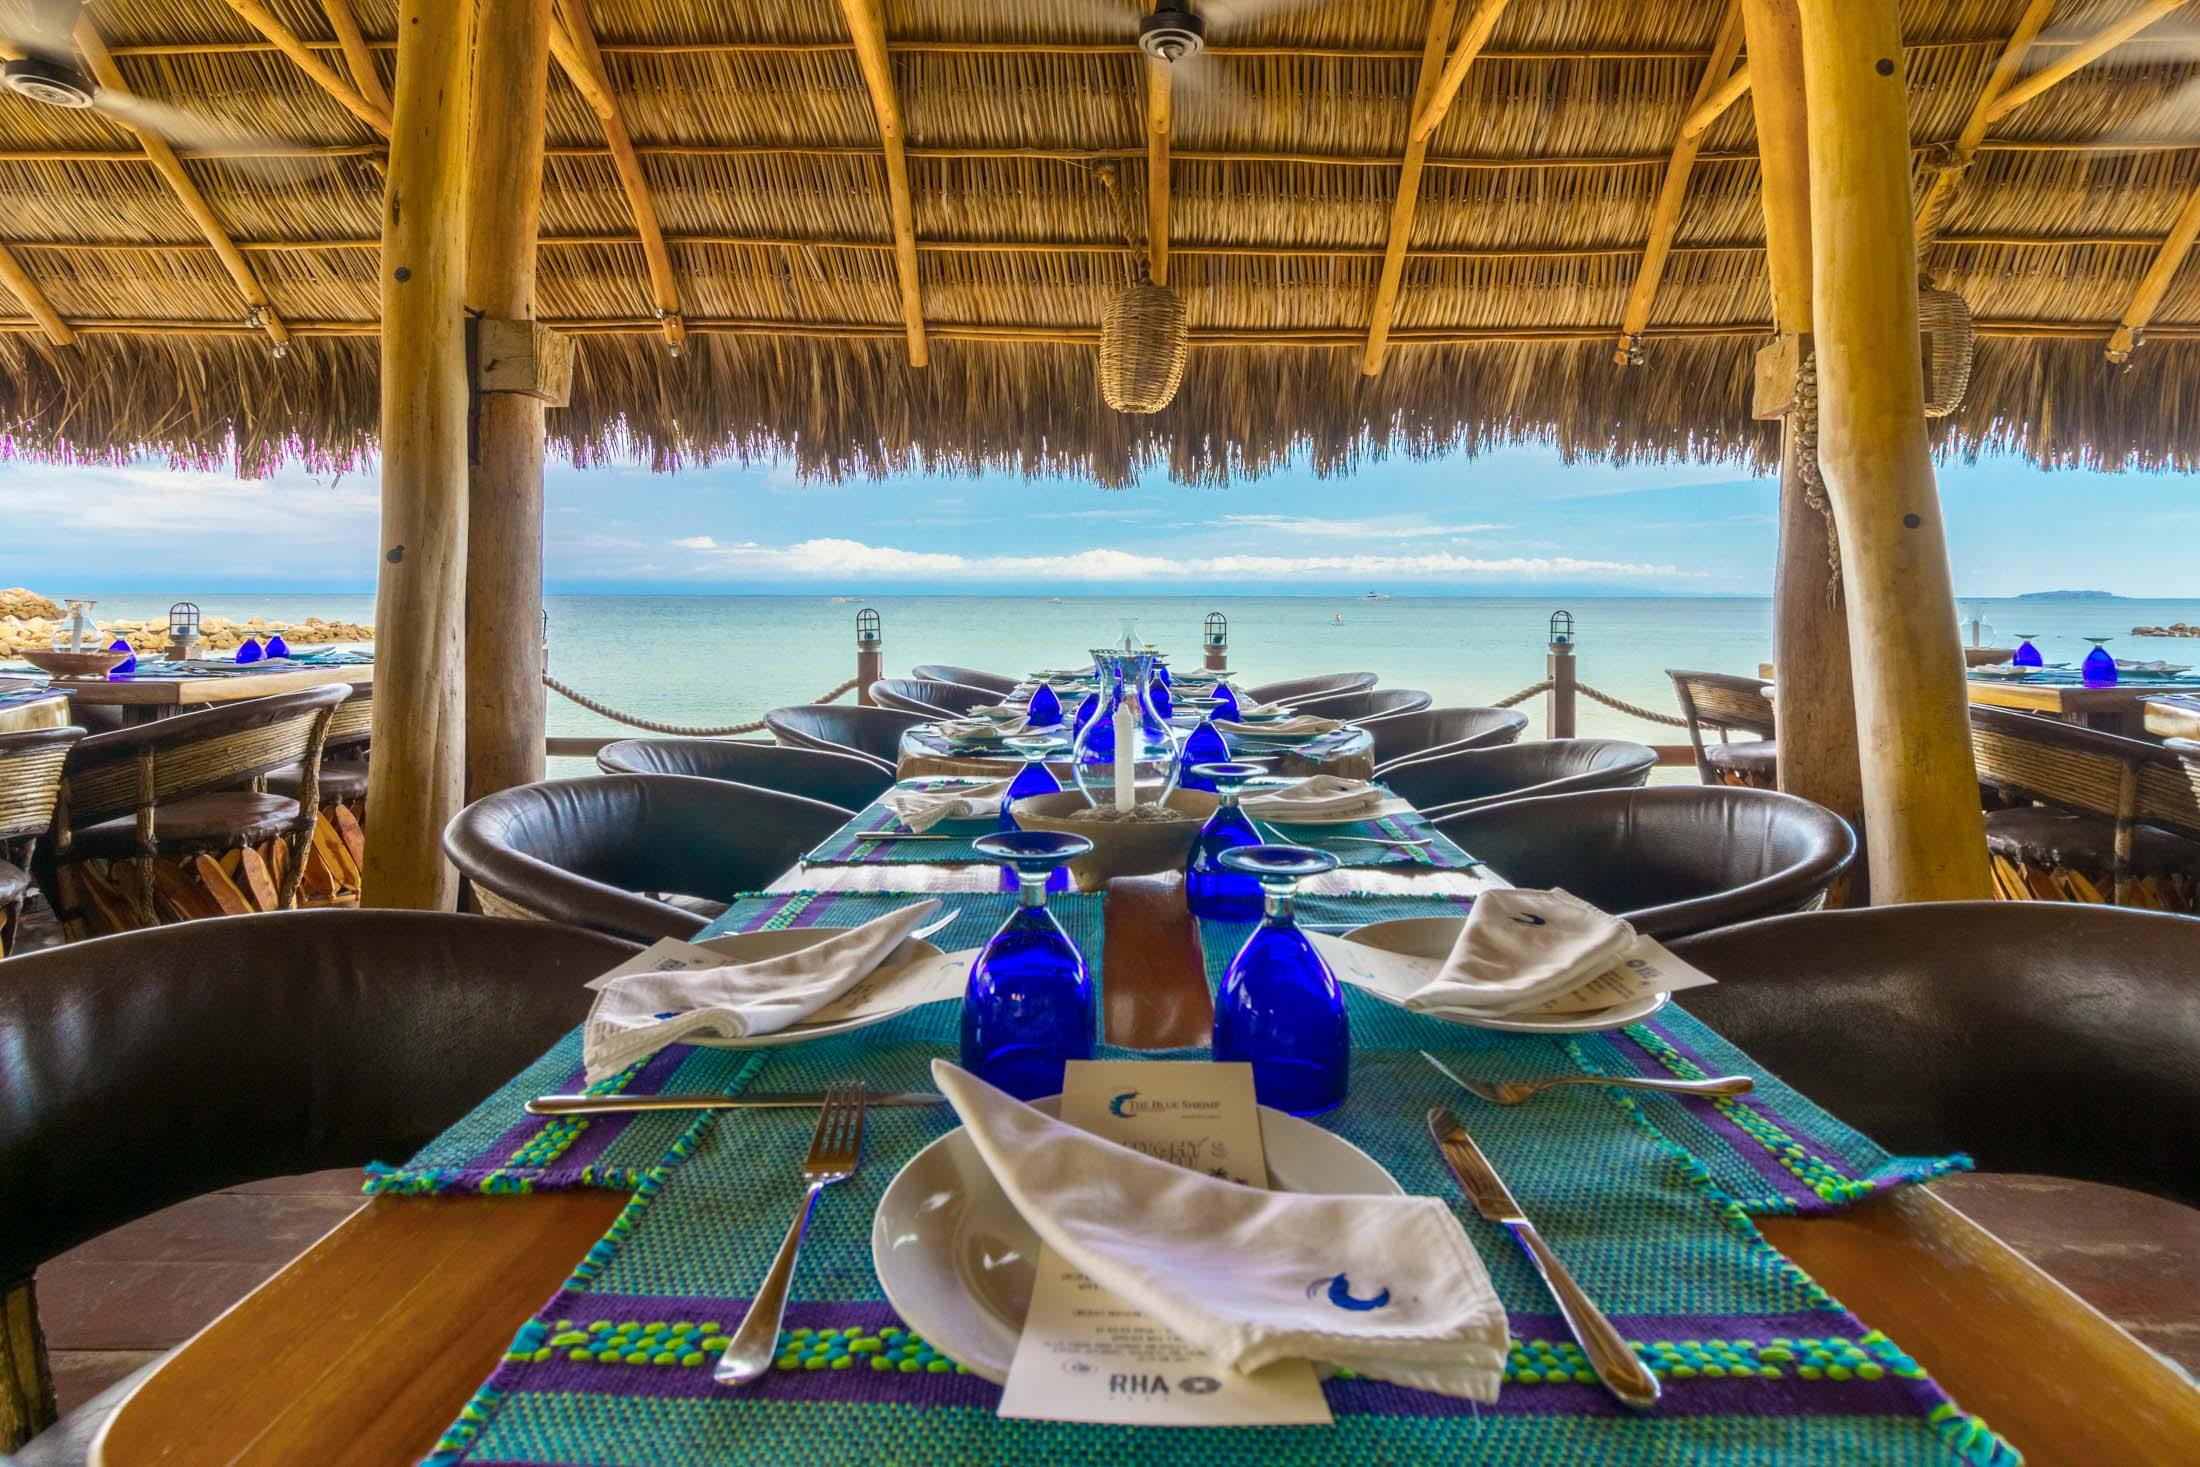 the_blue)shrimp_punta_mita_photographer_punta_mita_alejandro_benitez-3